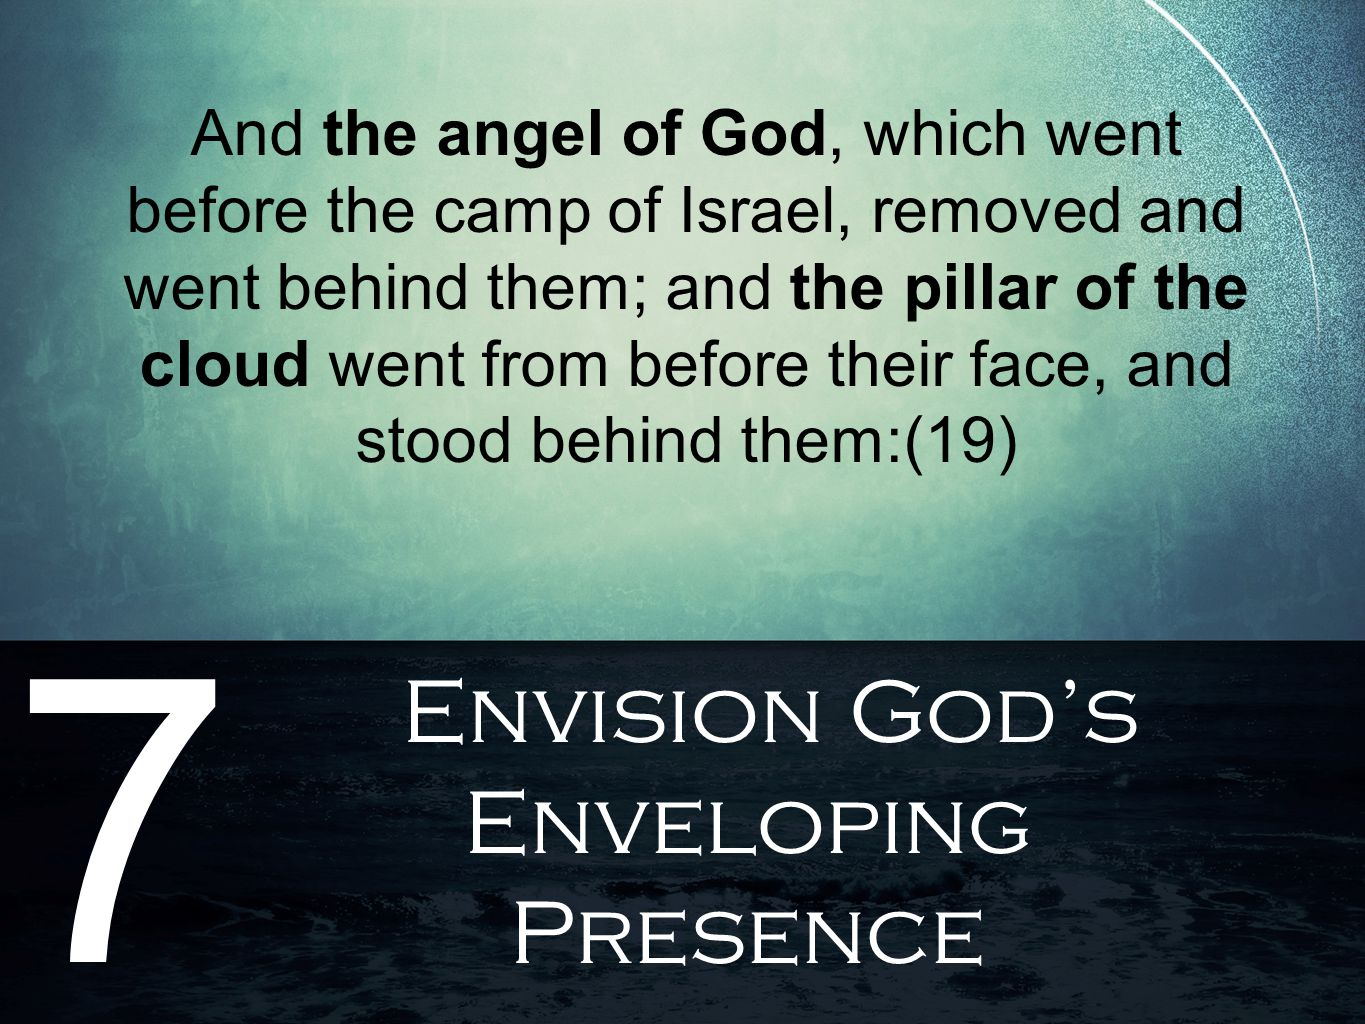 Envision God's Enveloping Presence 7 And the angel of God, which went before the camp of Israel, removed and went behind them; and the pillar of the cloud went from before their face, and stood behind them:(19)